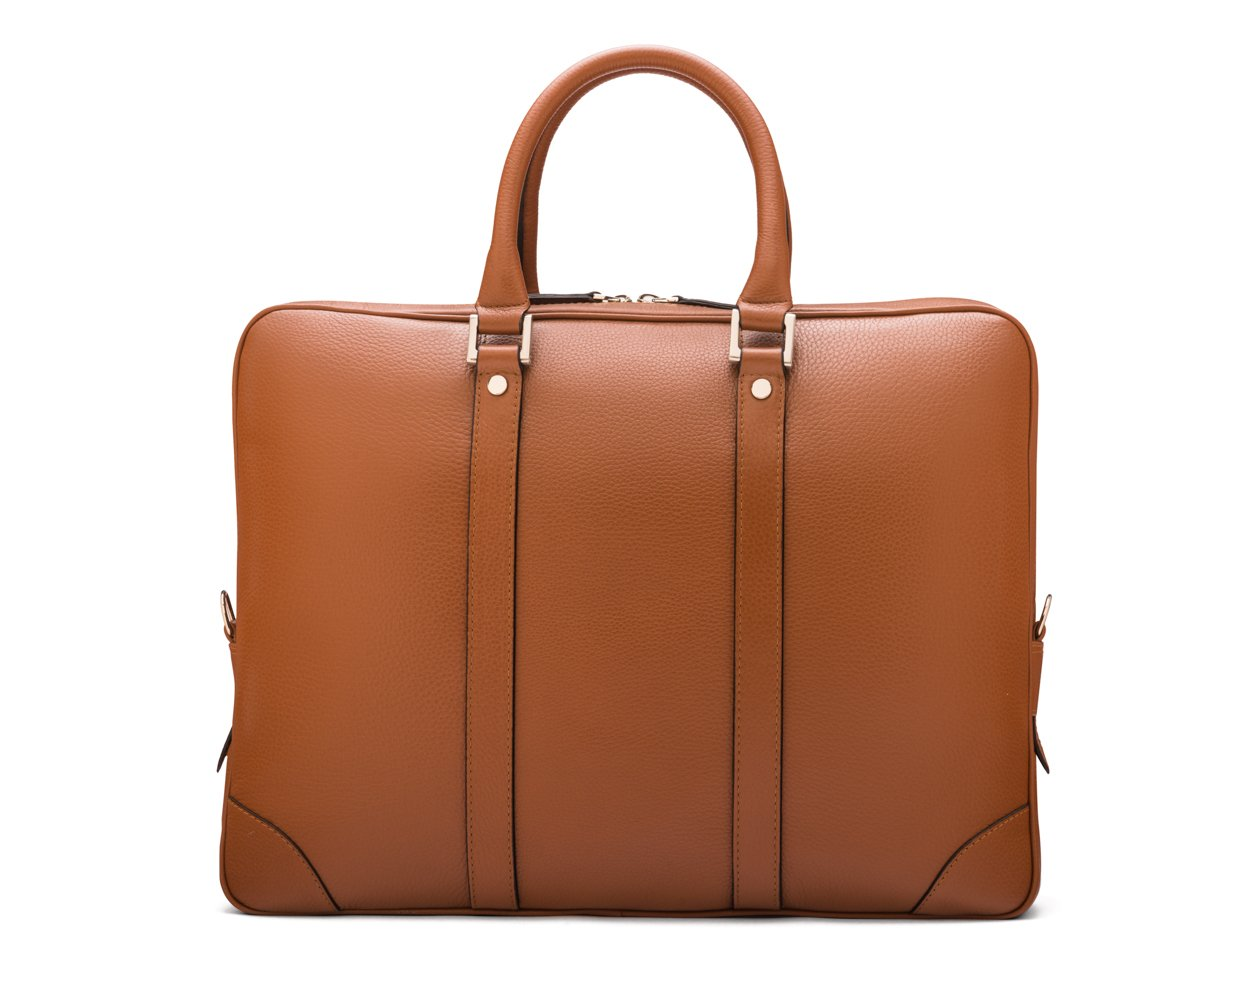 SAGEBROWN Tan Gainsborough Laptop Bag